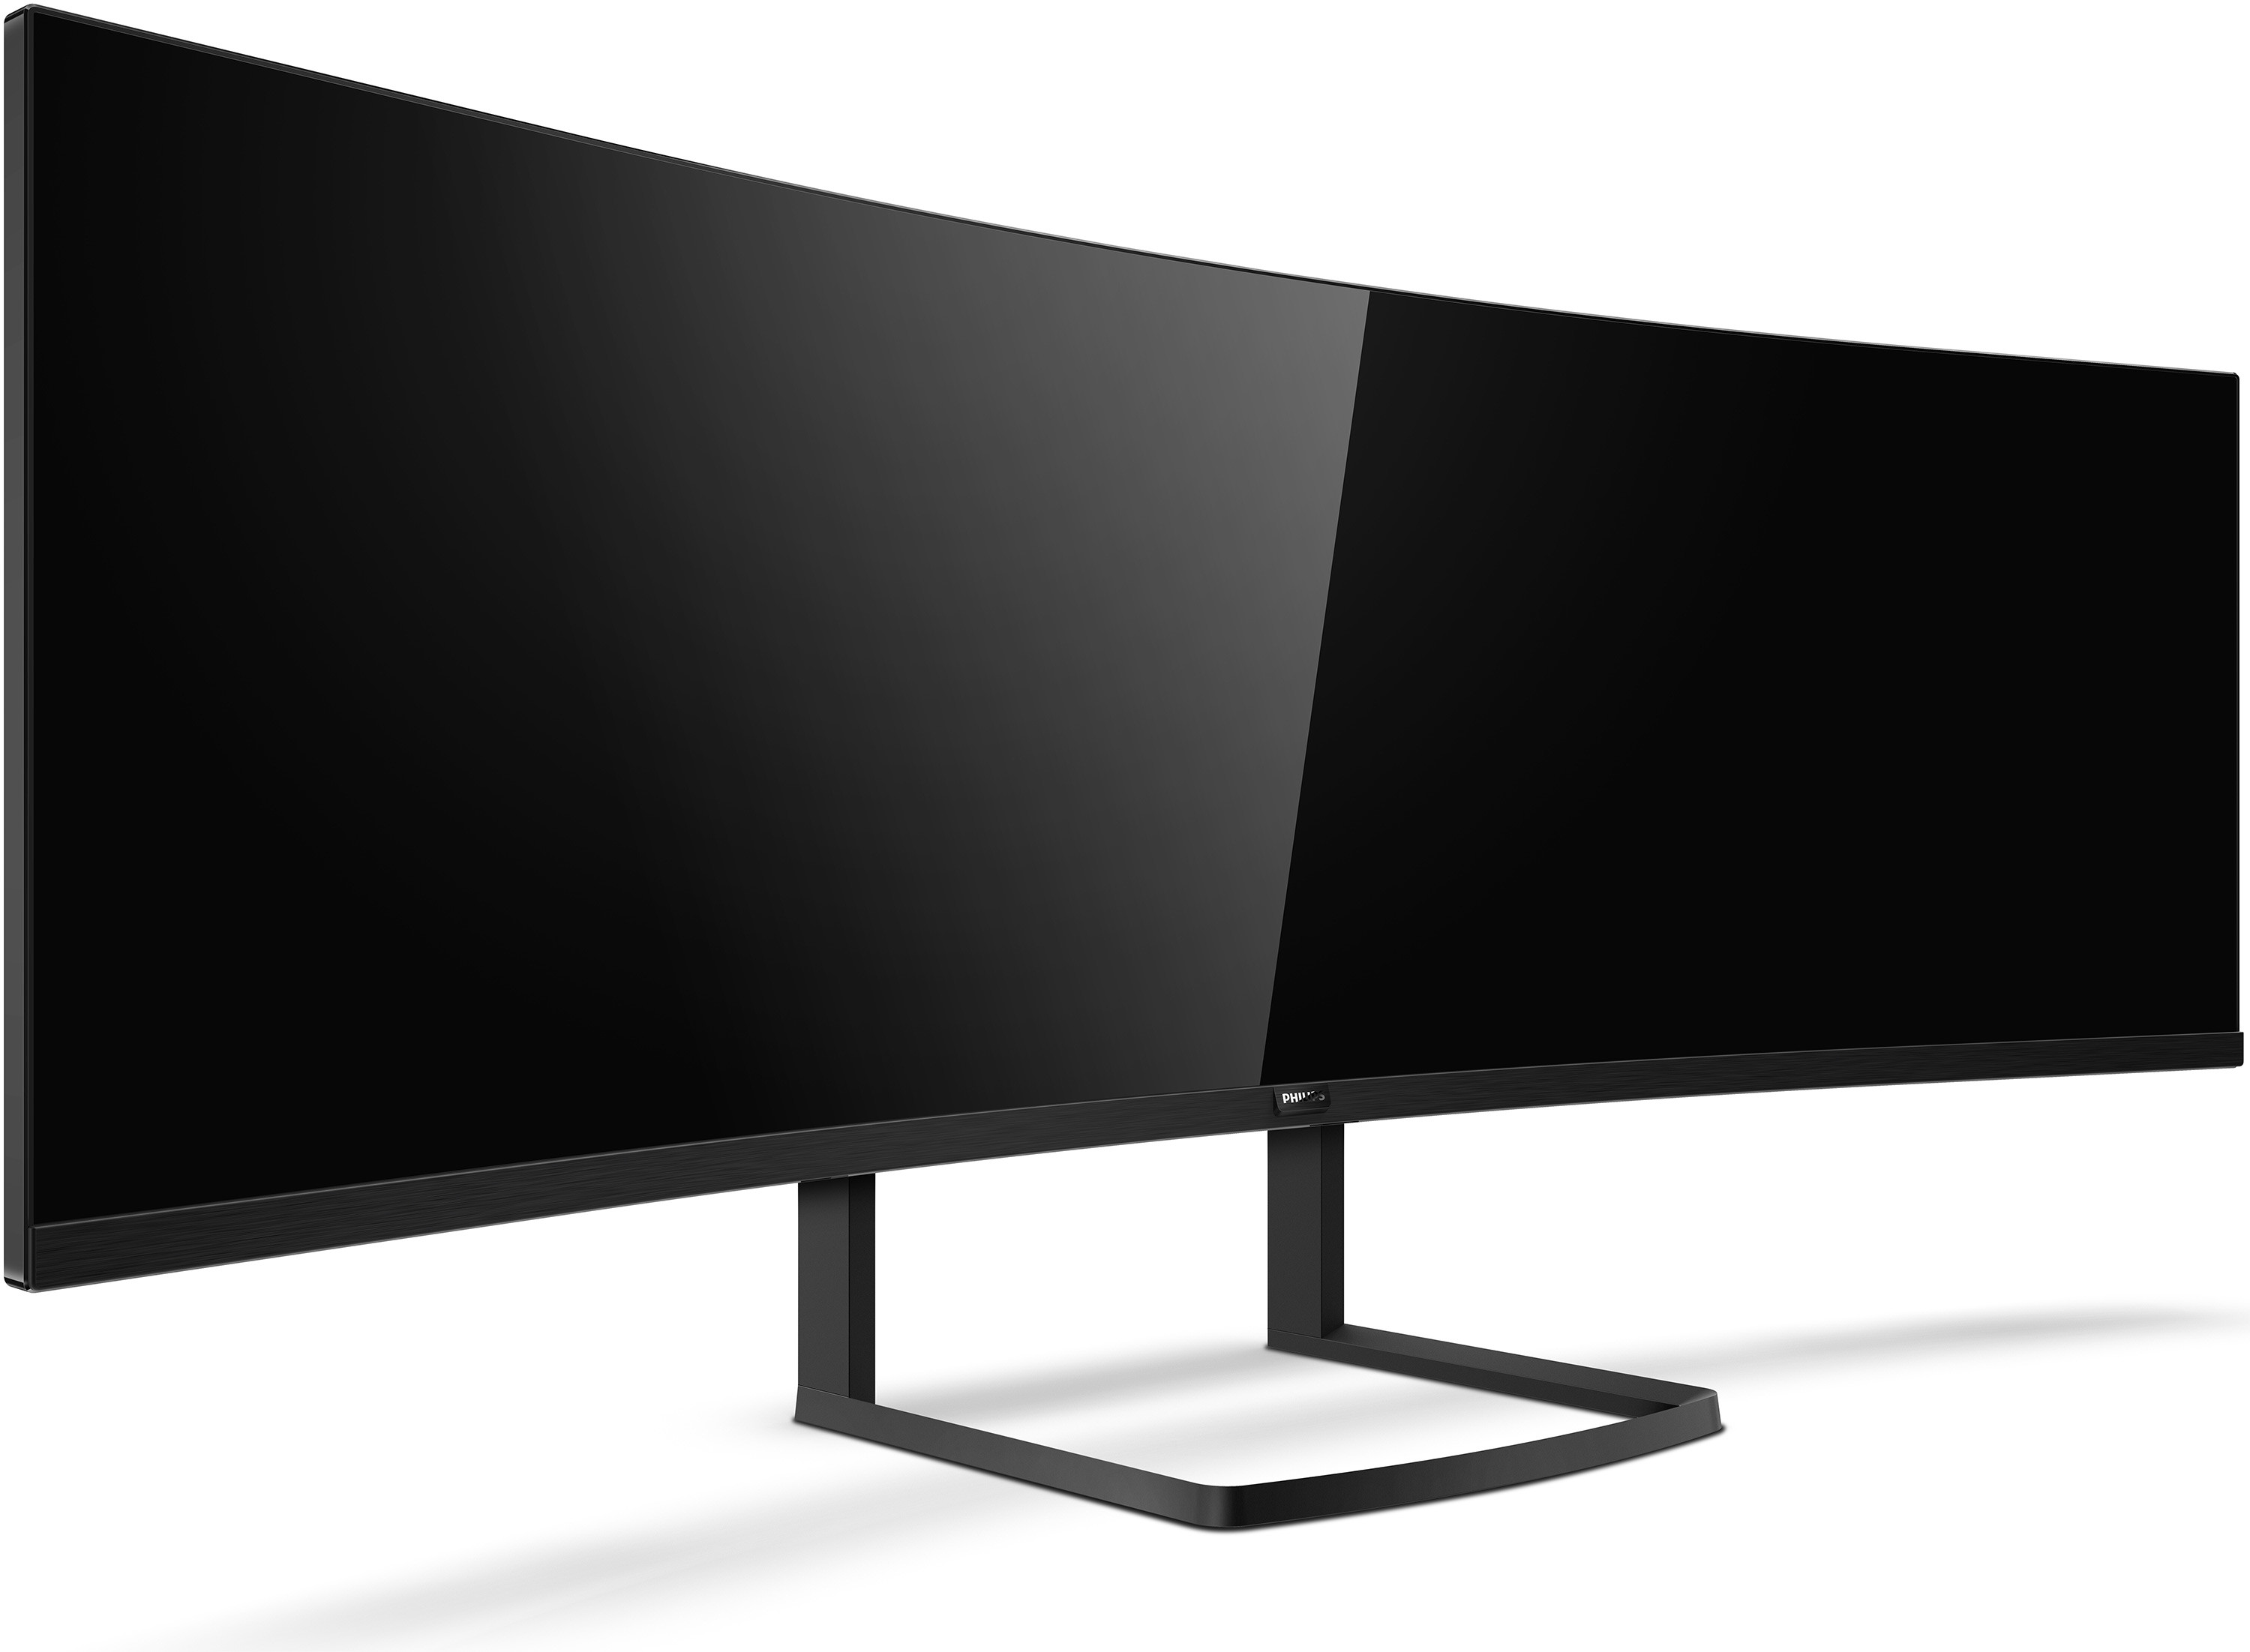 a 49 32 9 monitor from philips why not tech news and reviews linus tech tips. Black Bedroom Furniture Sets. Home Design Ideas